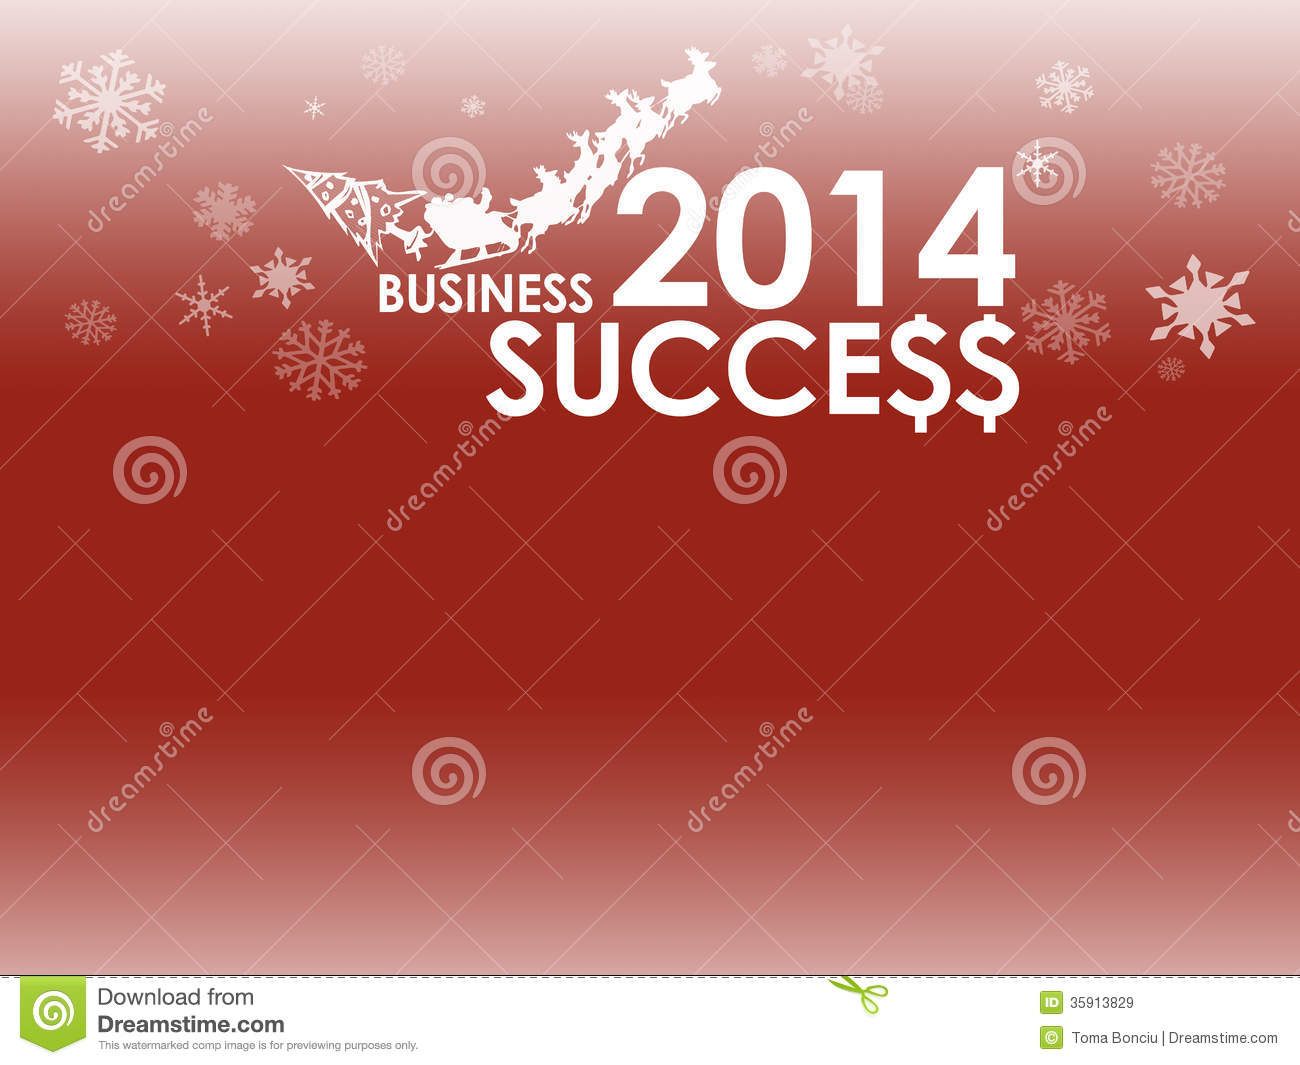 Delighted New Year Cards For Business Pictures Inspiration ...